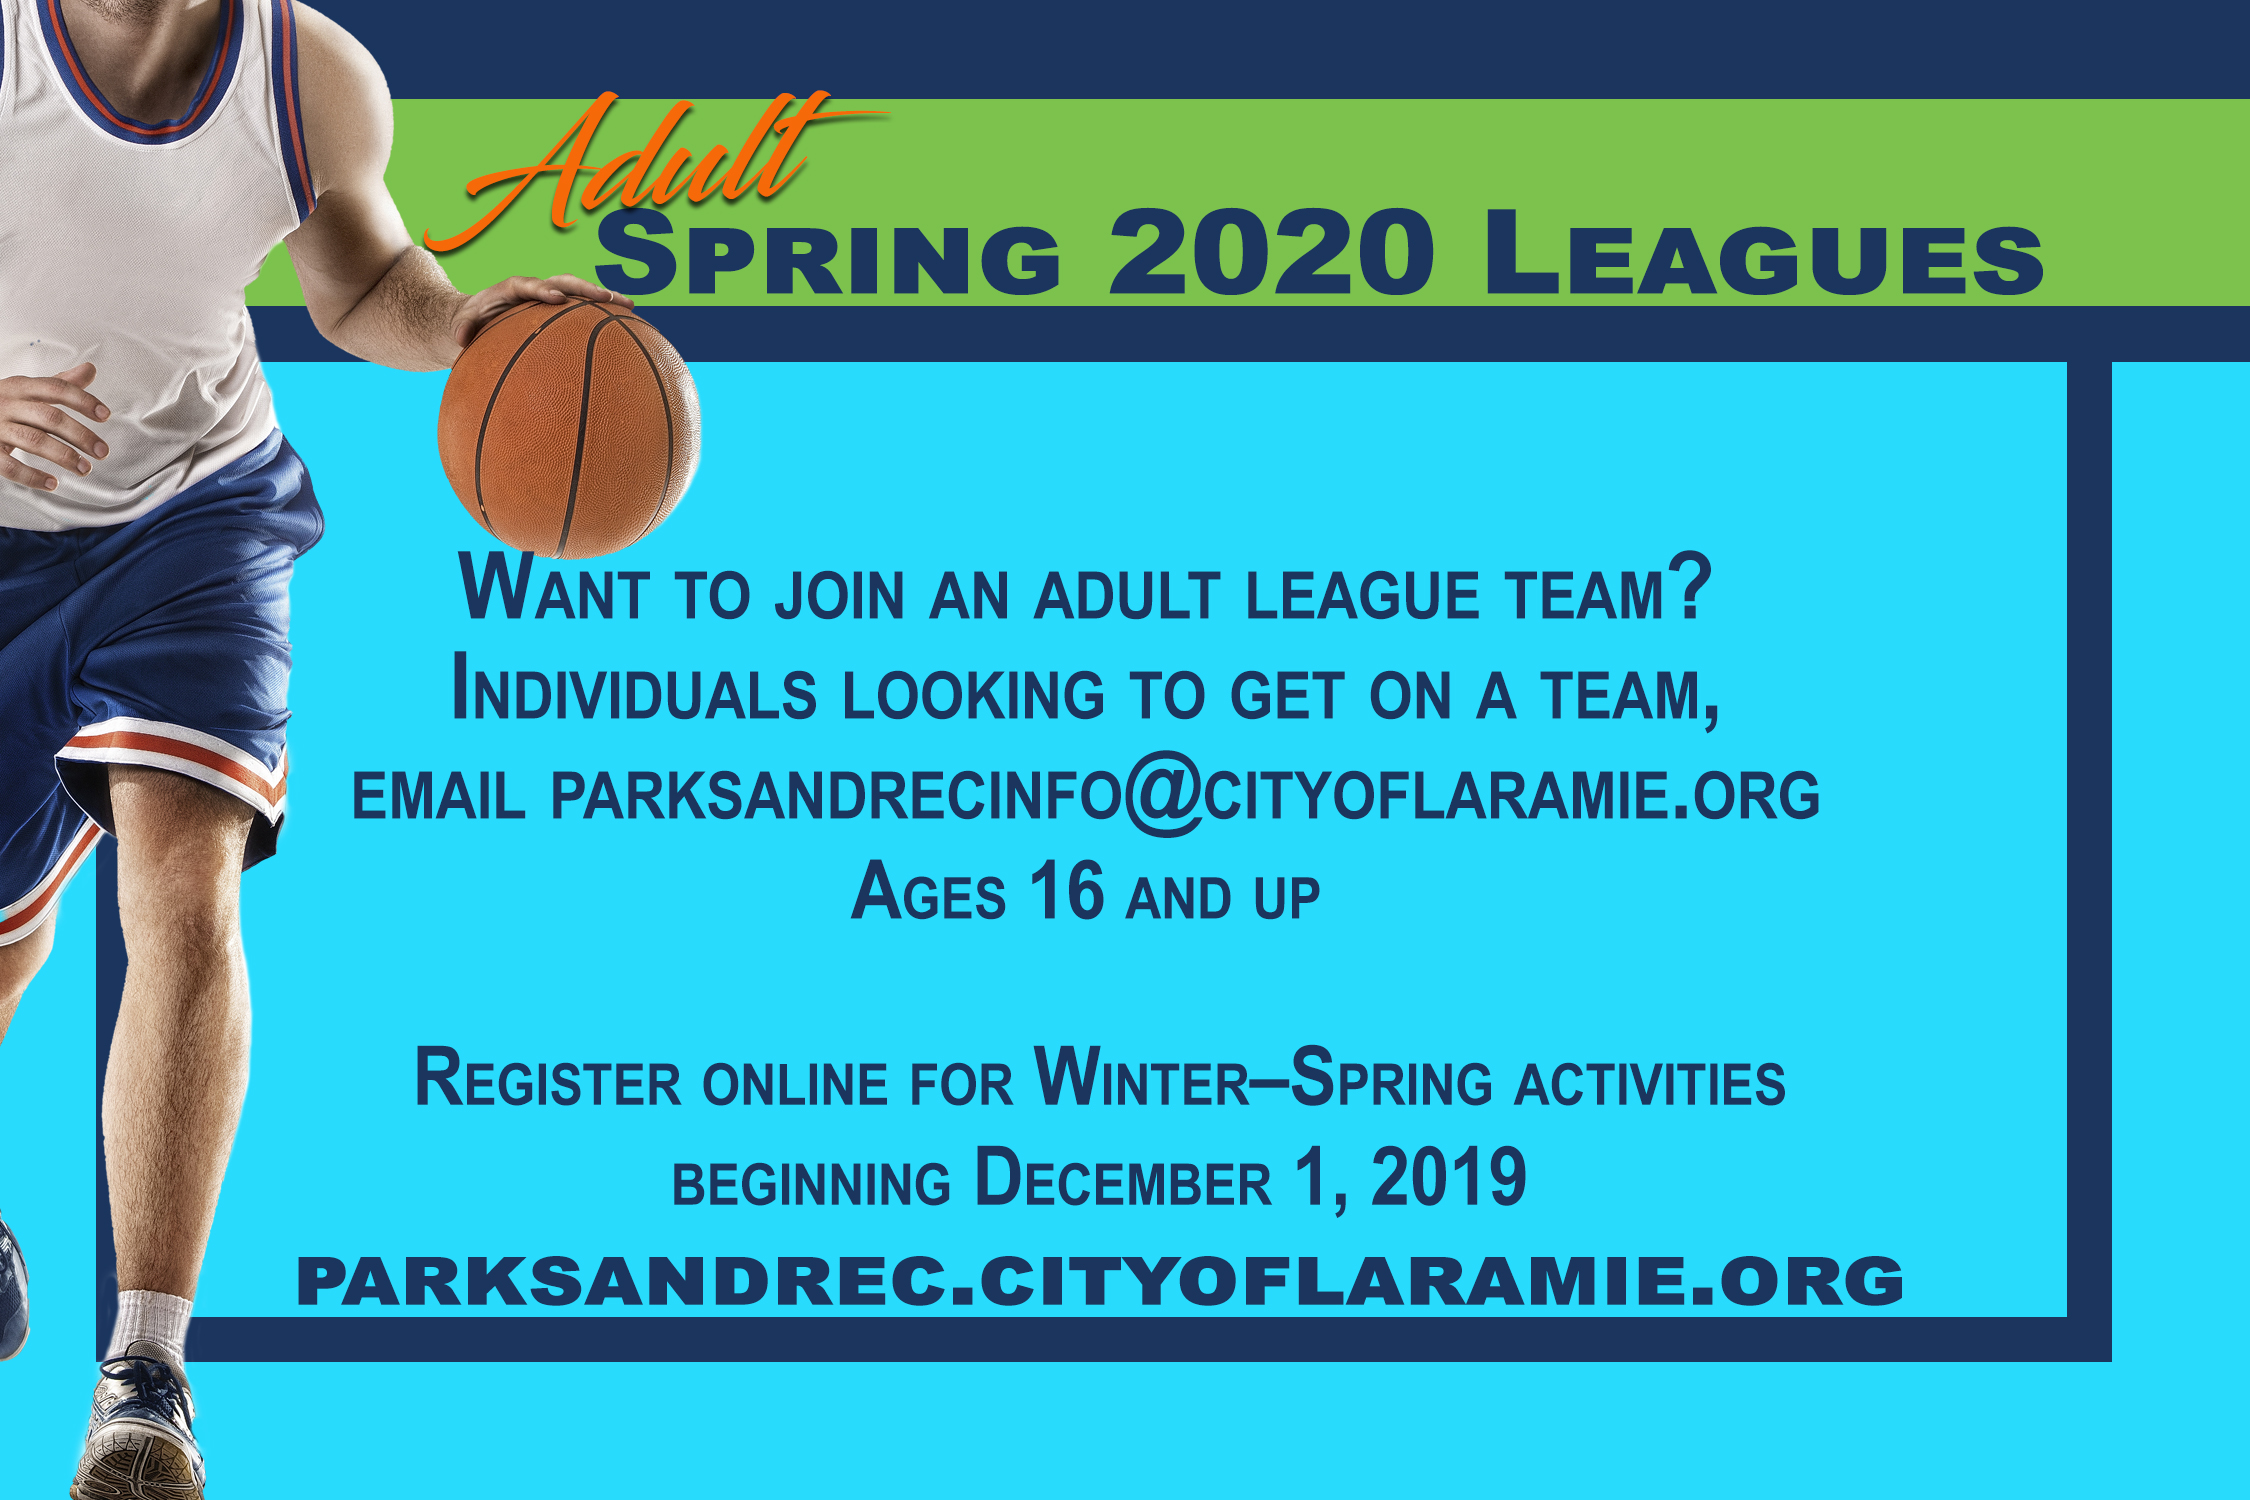 AdultLeague-RegisterOnline_Winter-Spring2020_GuideAd